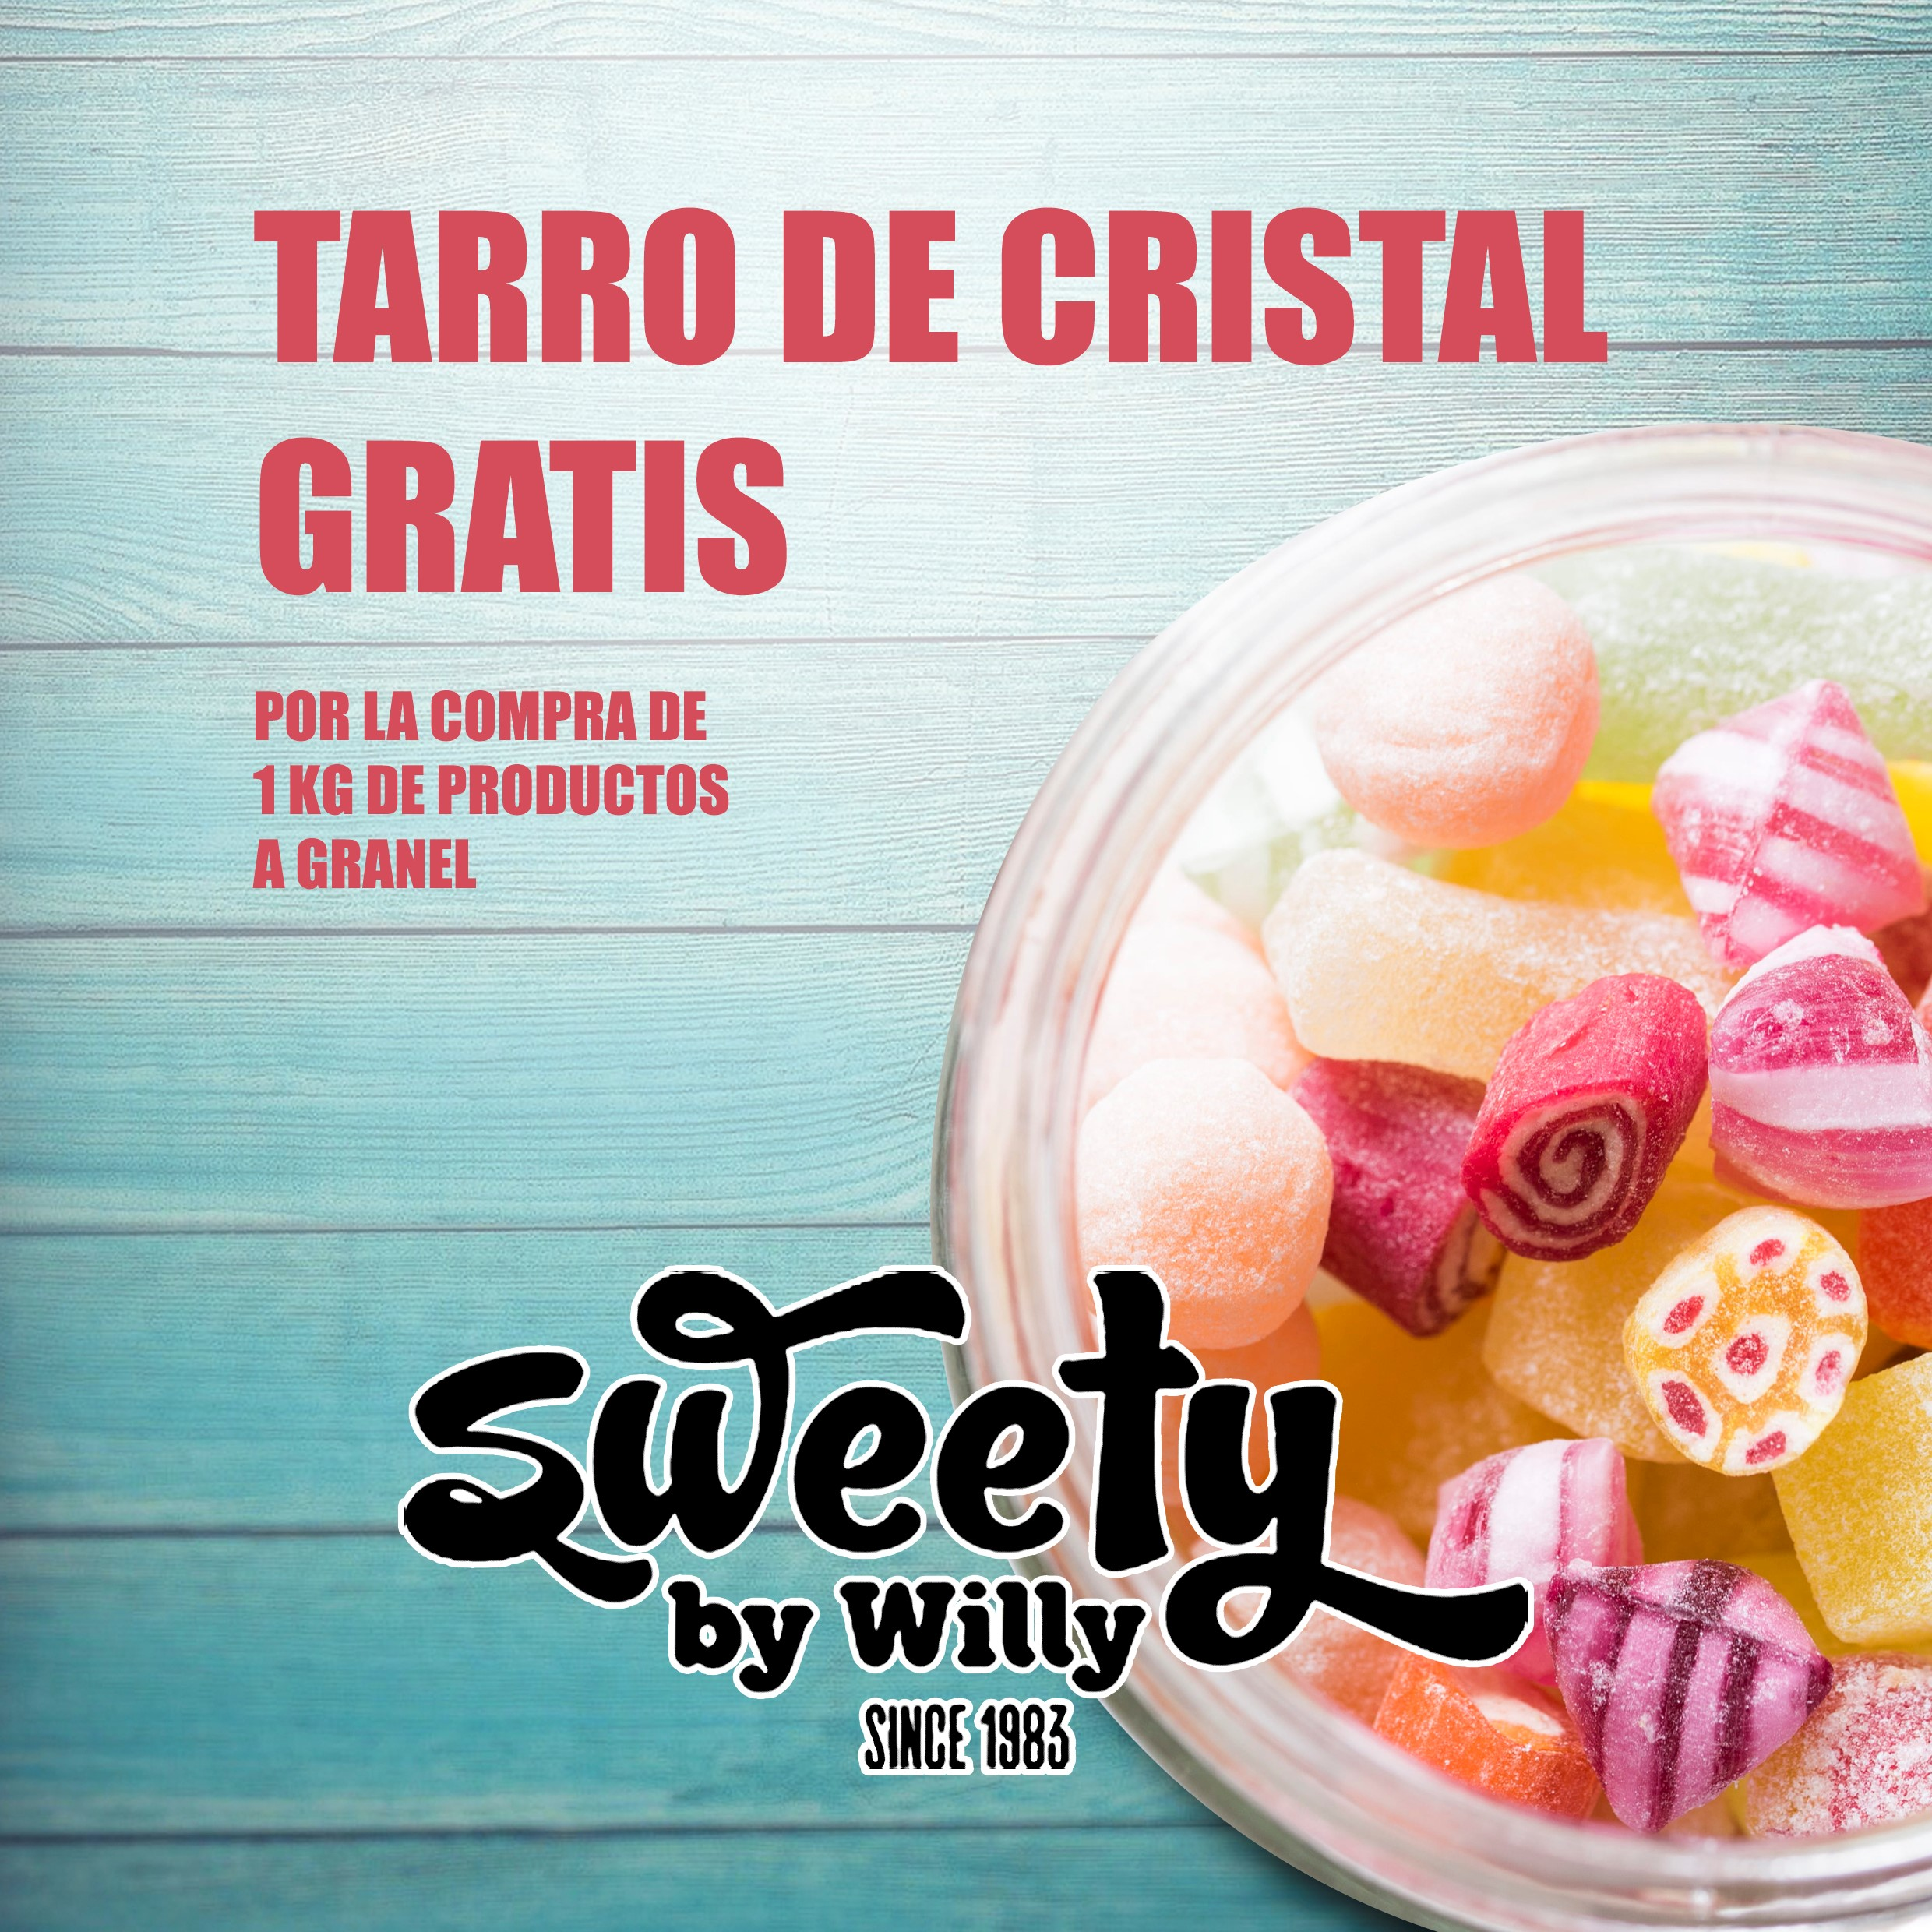 Oferta Sweety by Willy, Centro Comercial La Verónica.